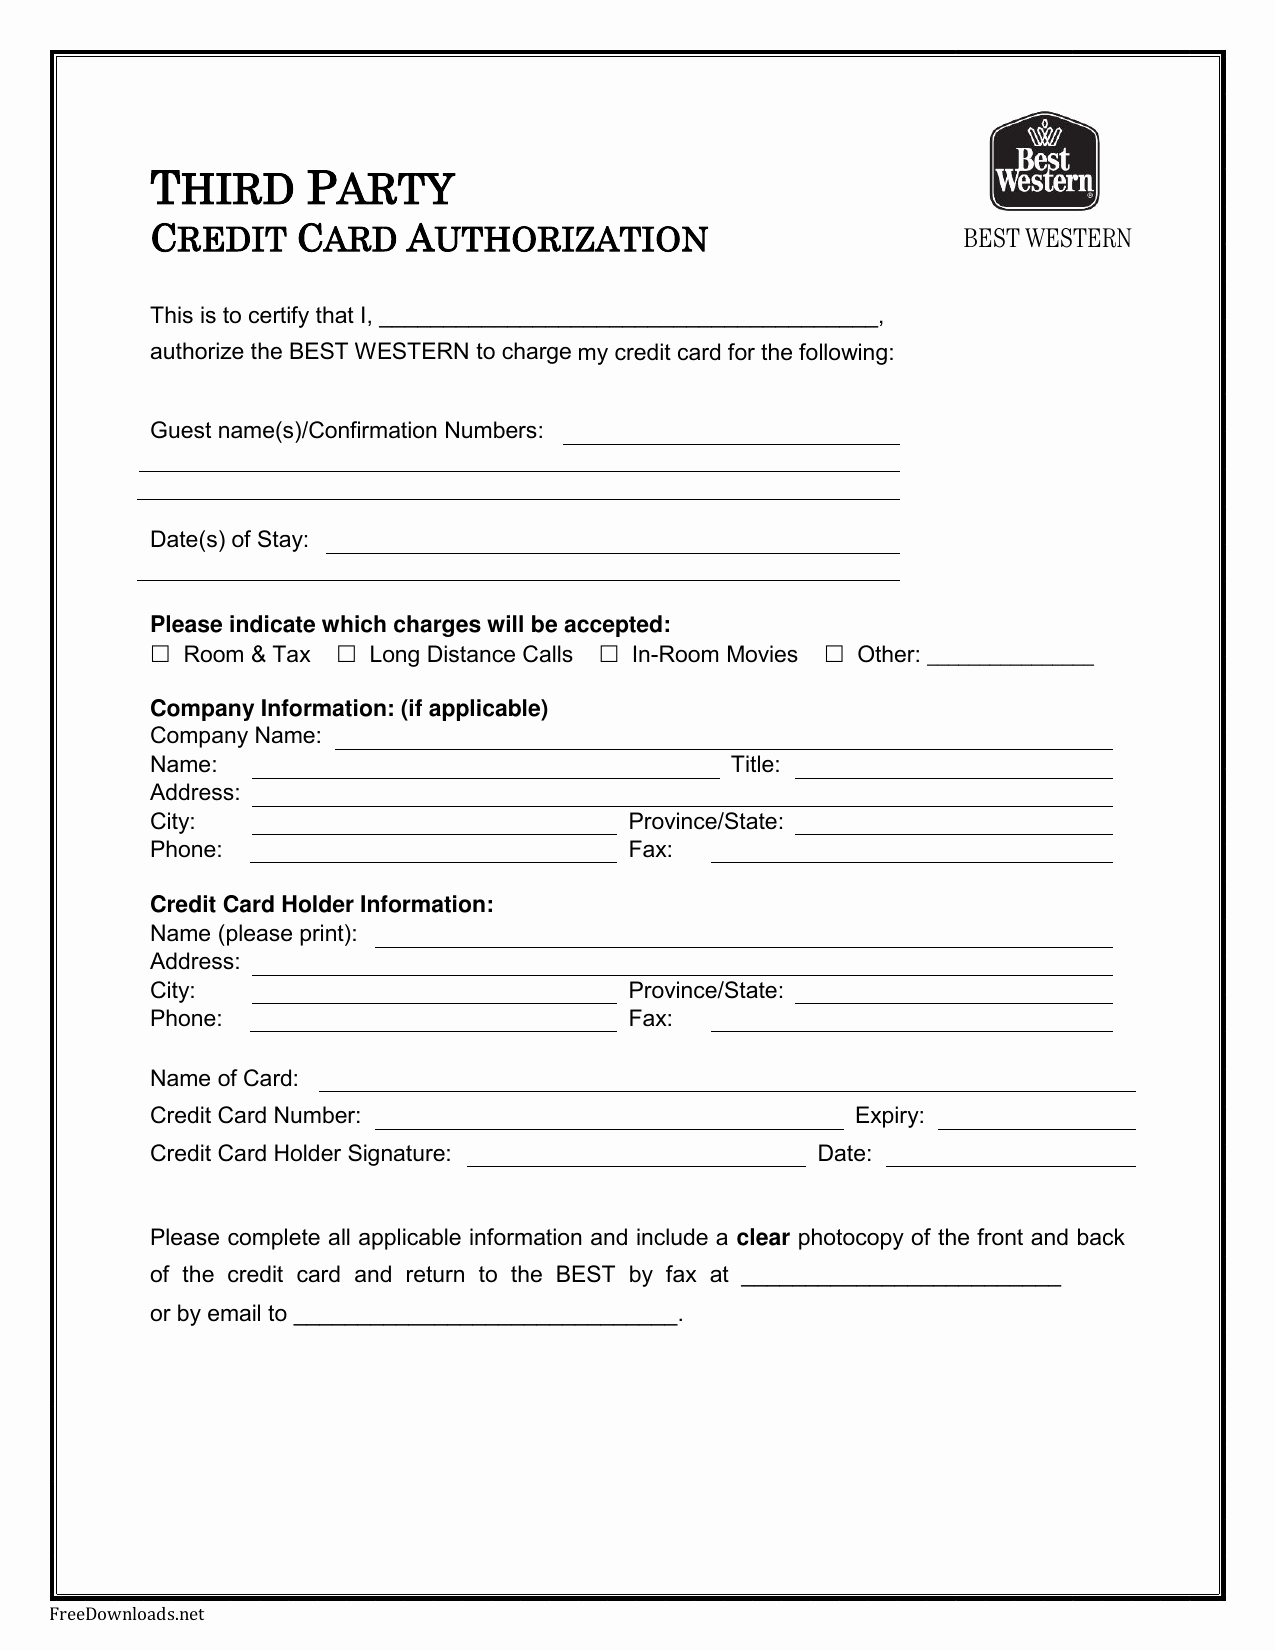 Credit Report Authorization form Template Fresh Download Best Western Credit Card Authorization form